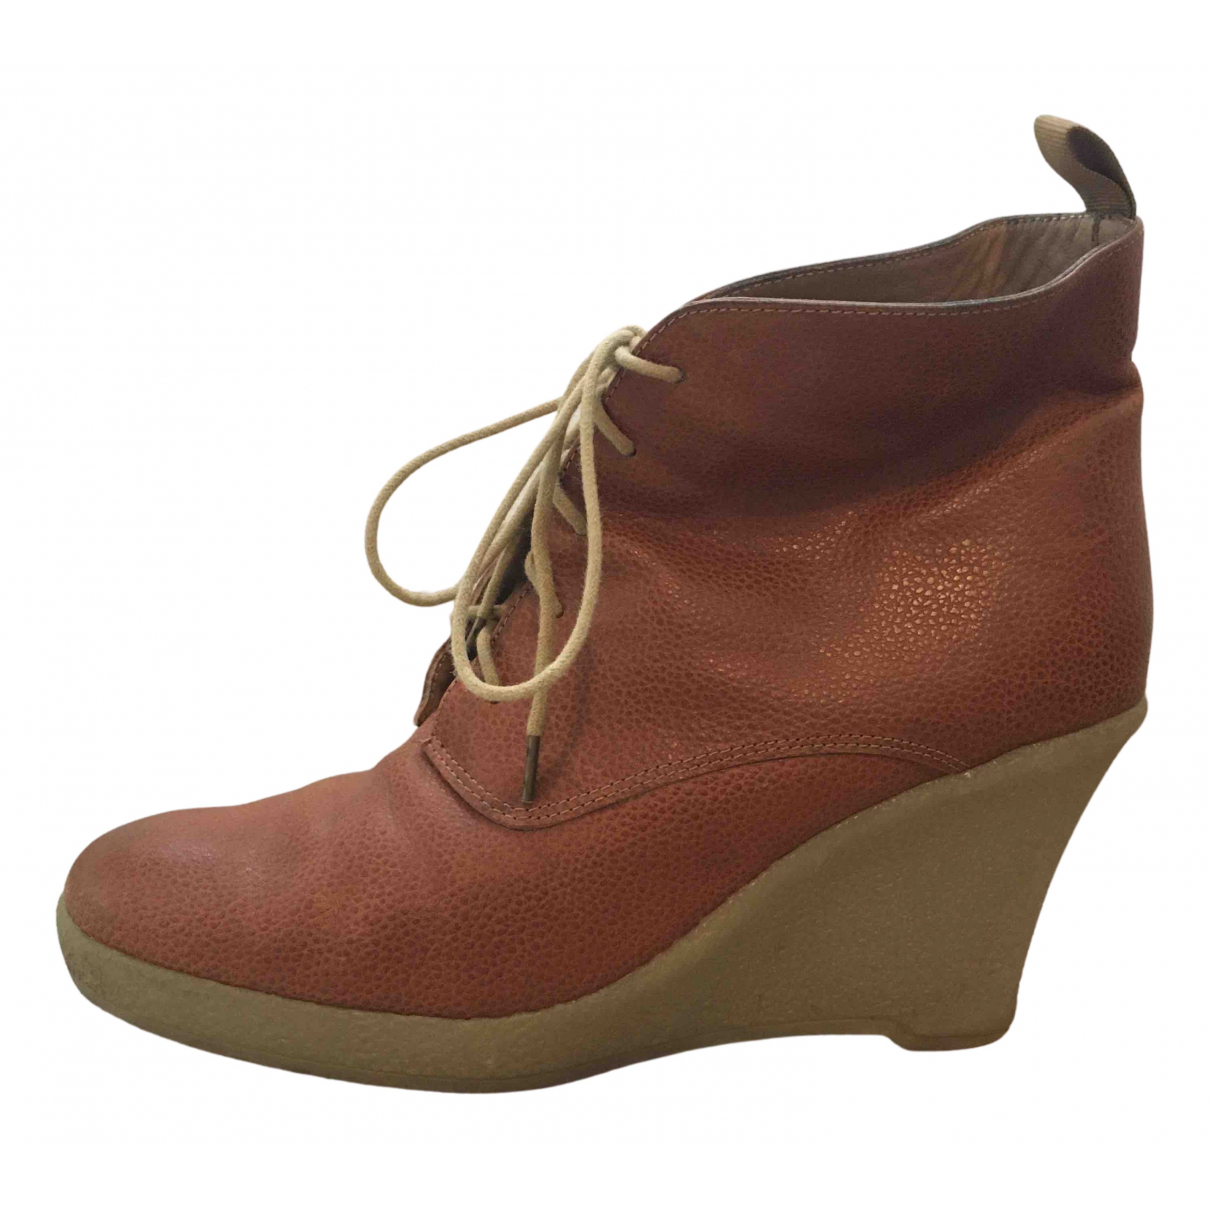 Mellow Yellow N Camel Leather Ankle boots for Women 40 EU